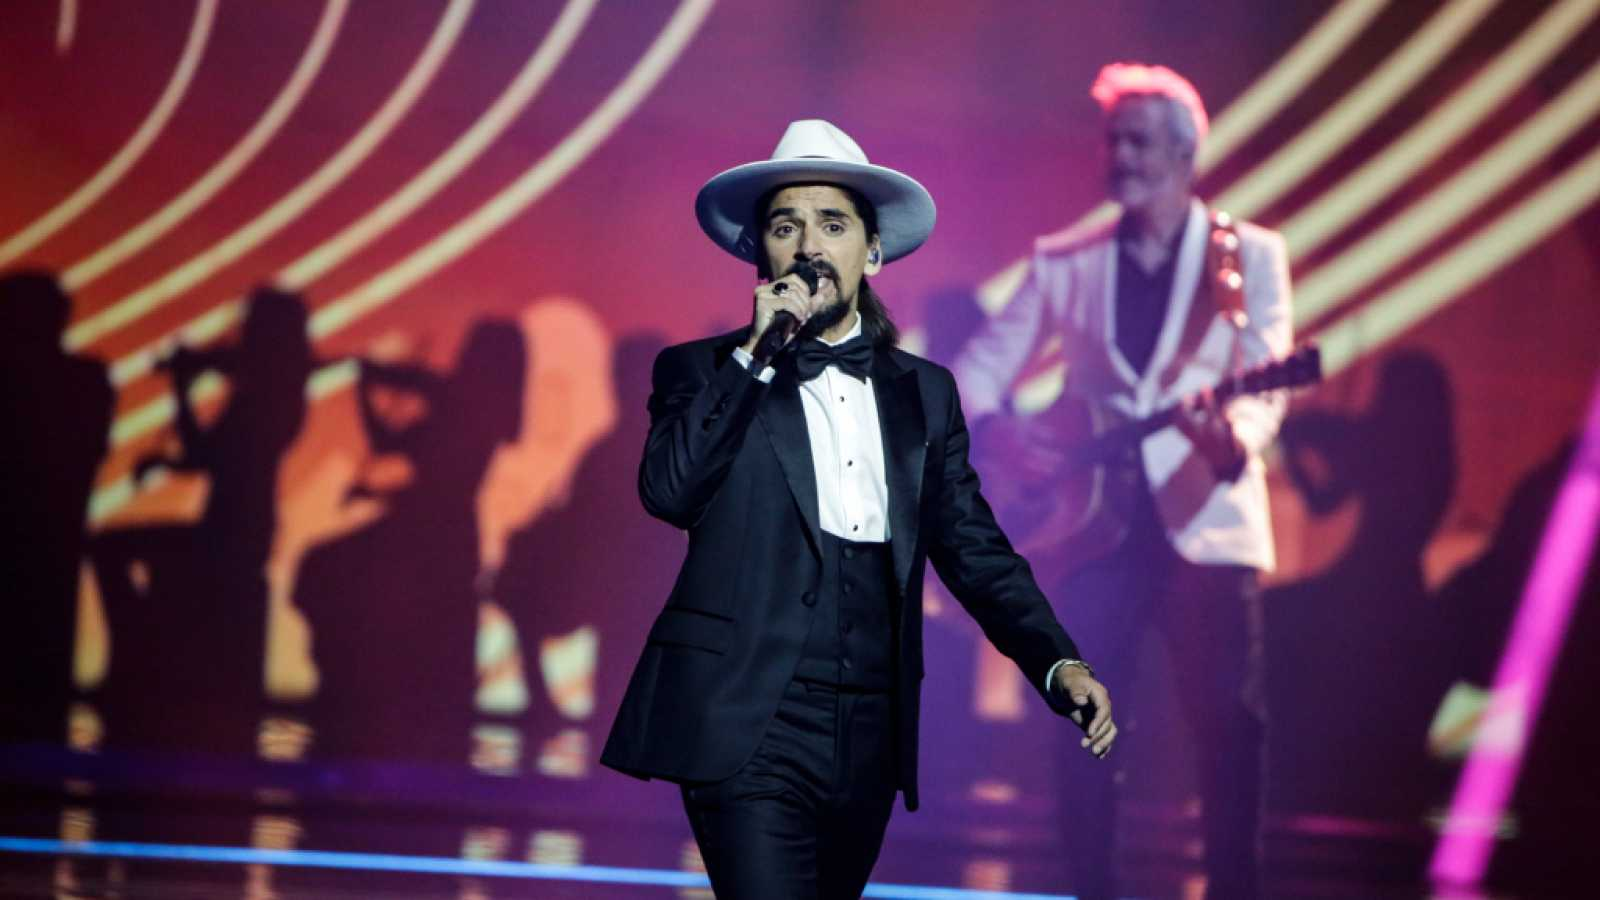 """Eurovisión 2021 - Portugal: The Black Mamba canta """"Love is on my side"""""""